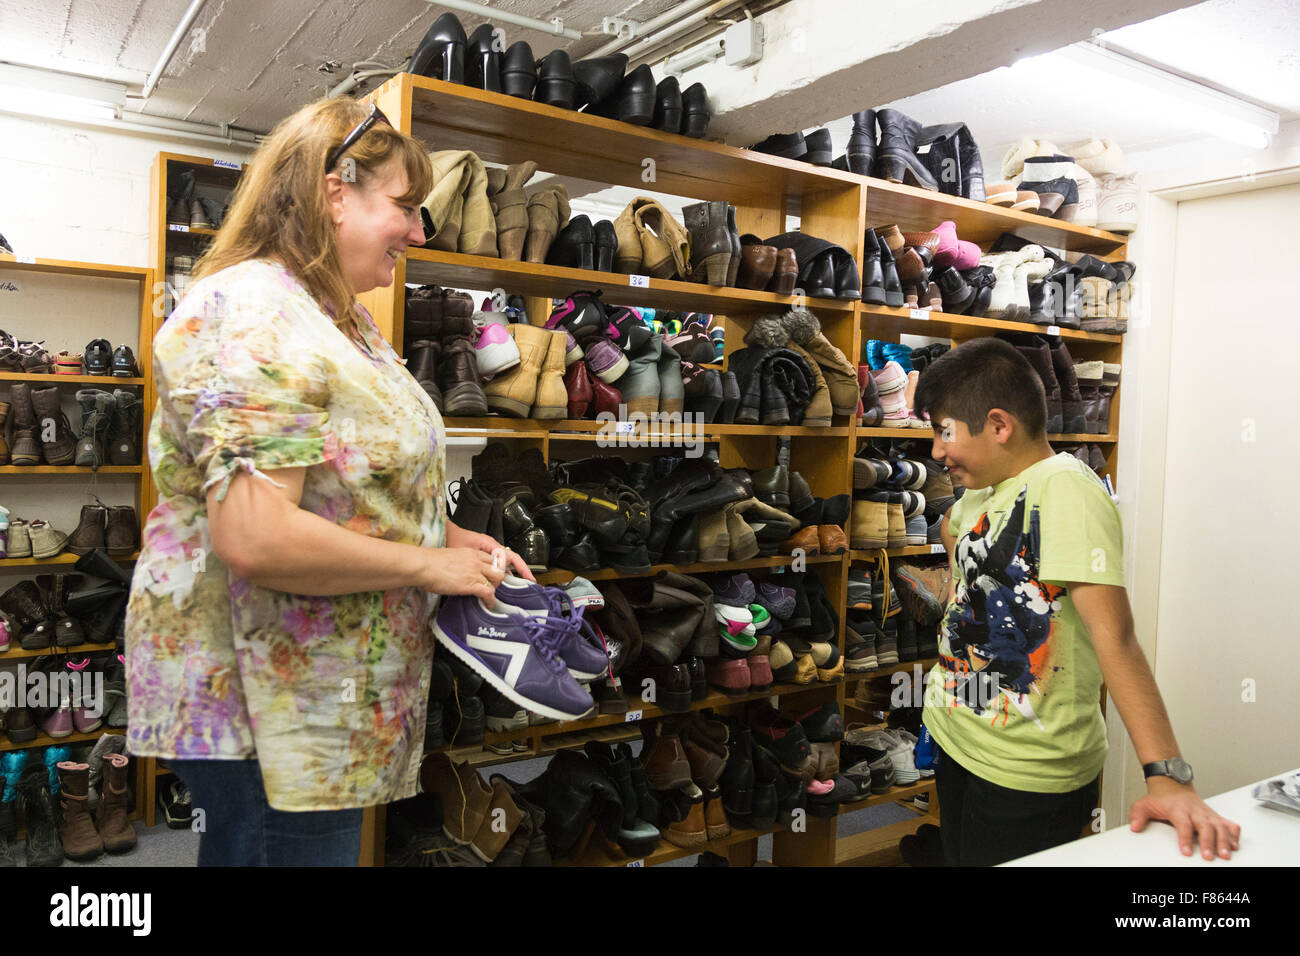 A volunteer shows donated shoes to a refugee boy. Shelves with donated shoes. Supporters of relief organisation - Stock Image